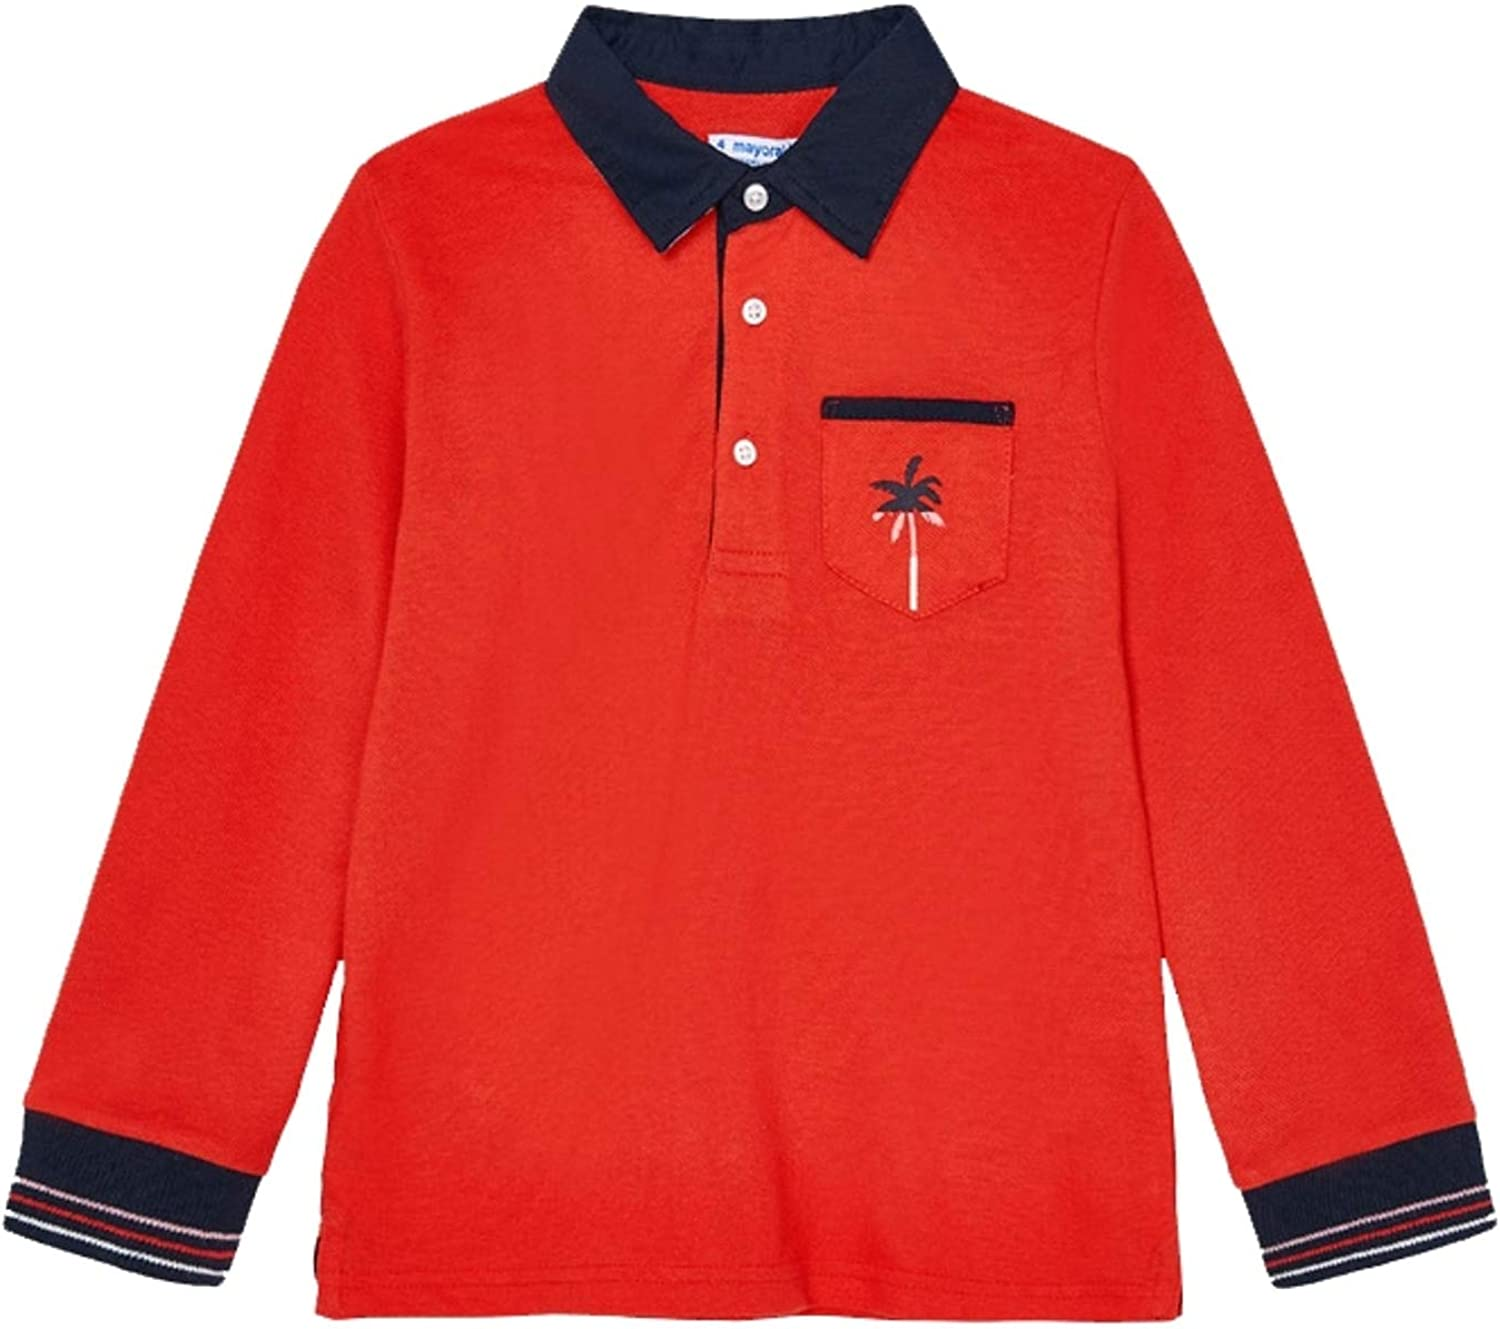 Mayoral - L/s Polo for Boys - 3115, Cyber red